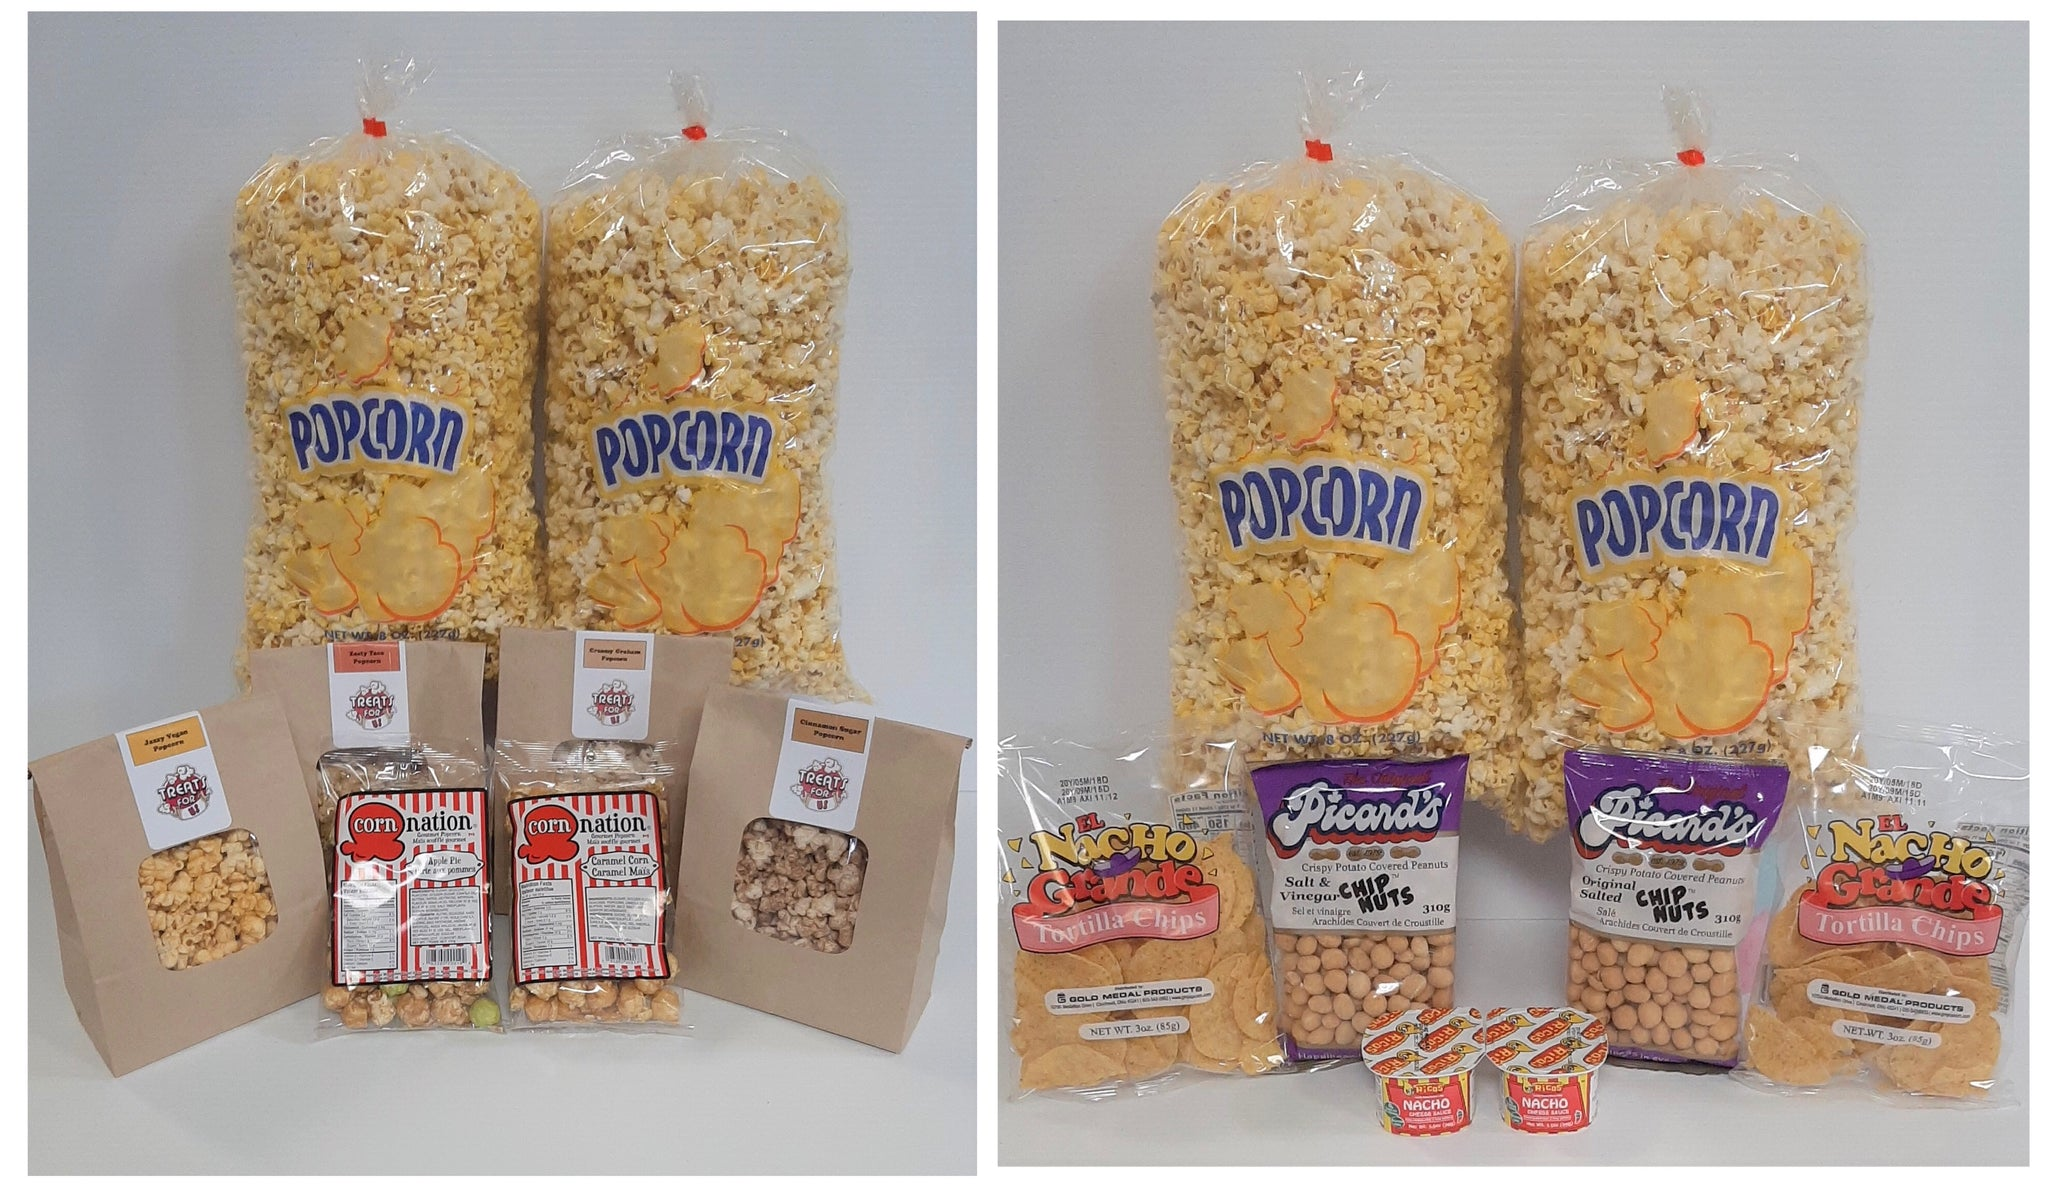 Introducing the Ultimate Popcorn Pack and Salty and Nutty Pack